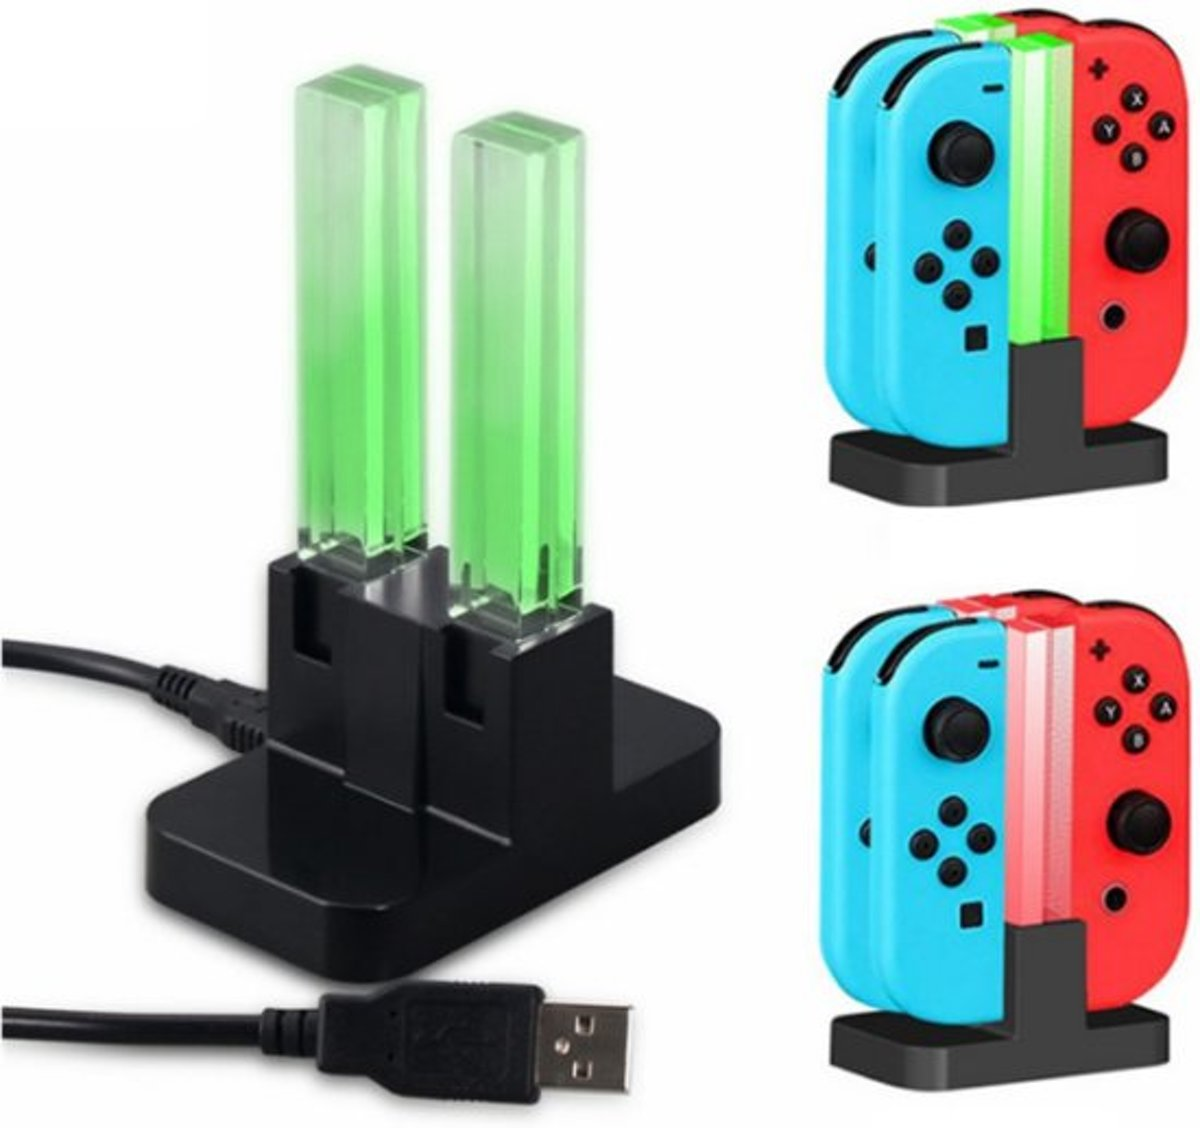 Oplaadstation - QUAD Charging Dock Nintendo - Switch Joy-Con - 4 Controllers